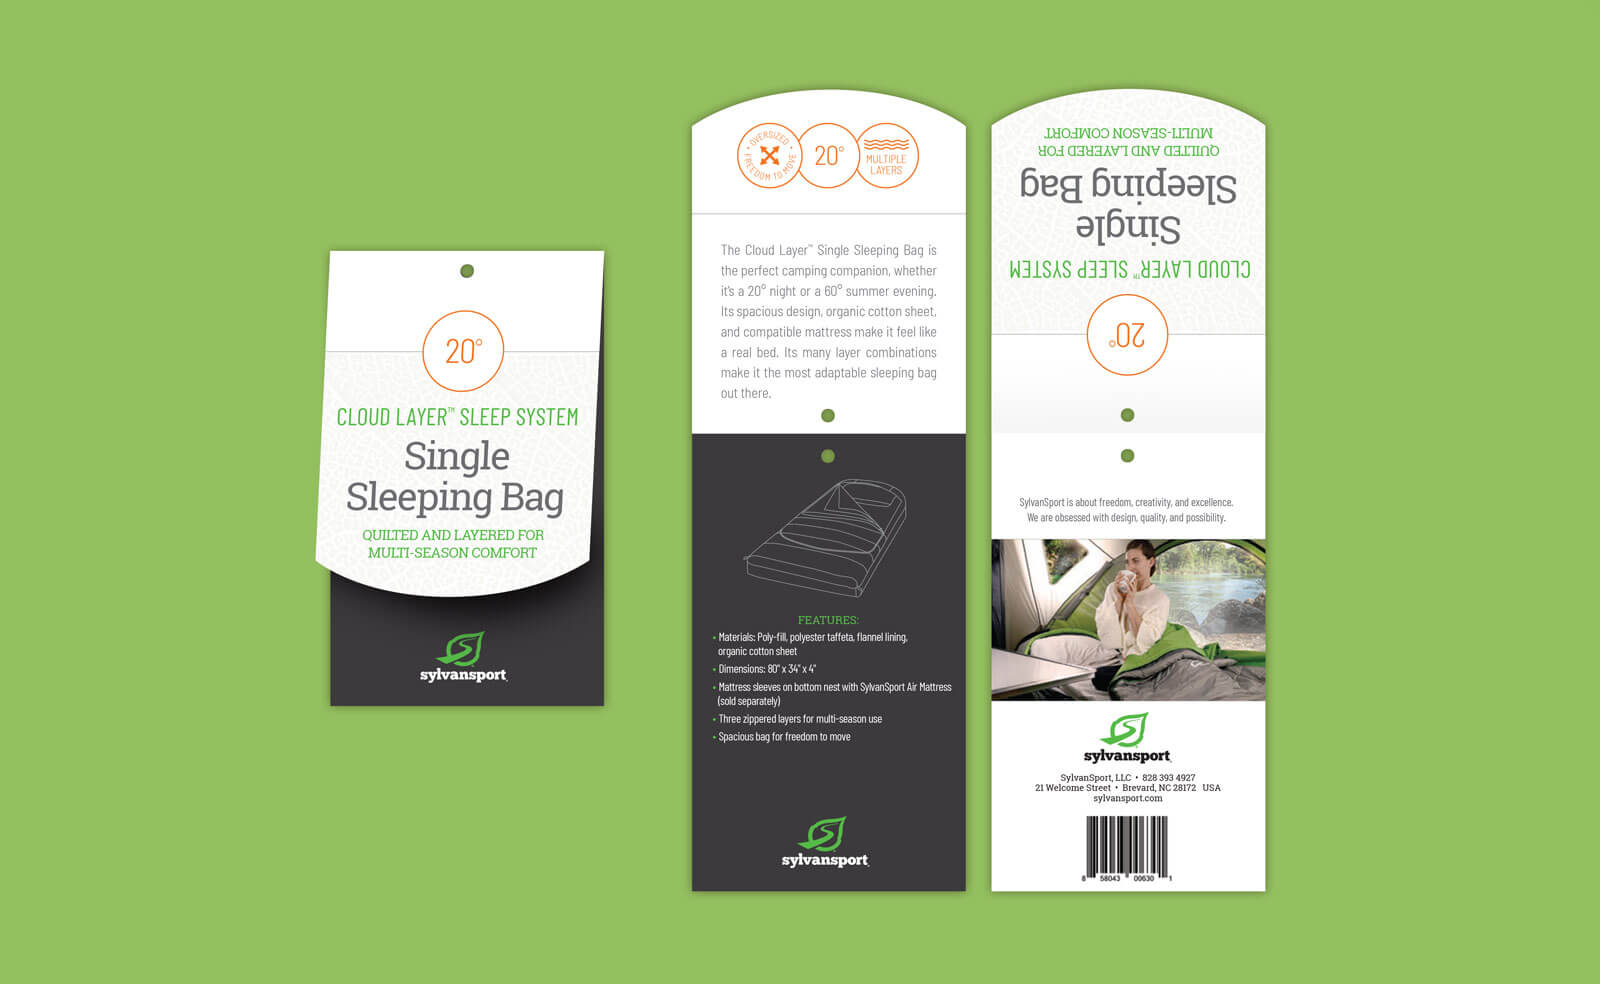 Sylvan Sport folded hangtag for Single Sleeping Bag with technical drawing. Shown against a green background.